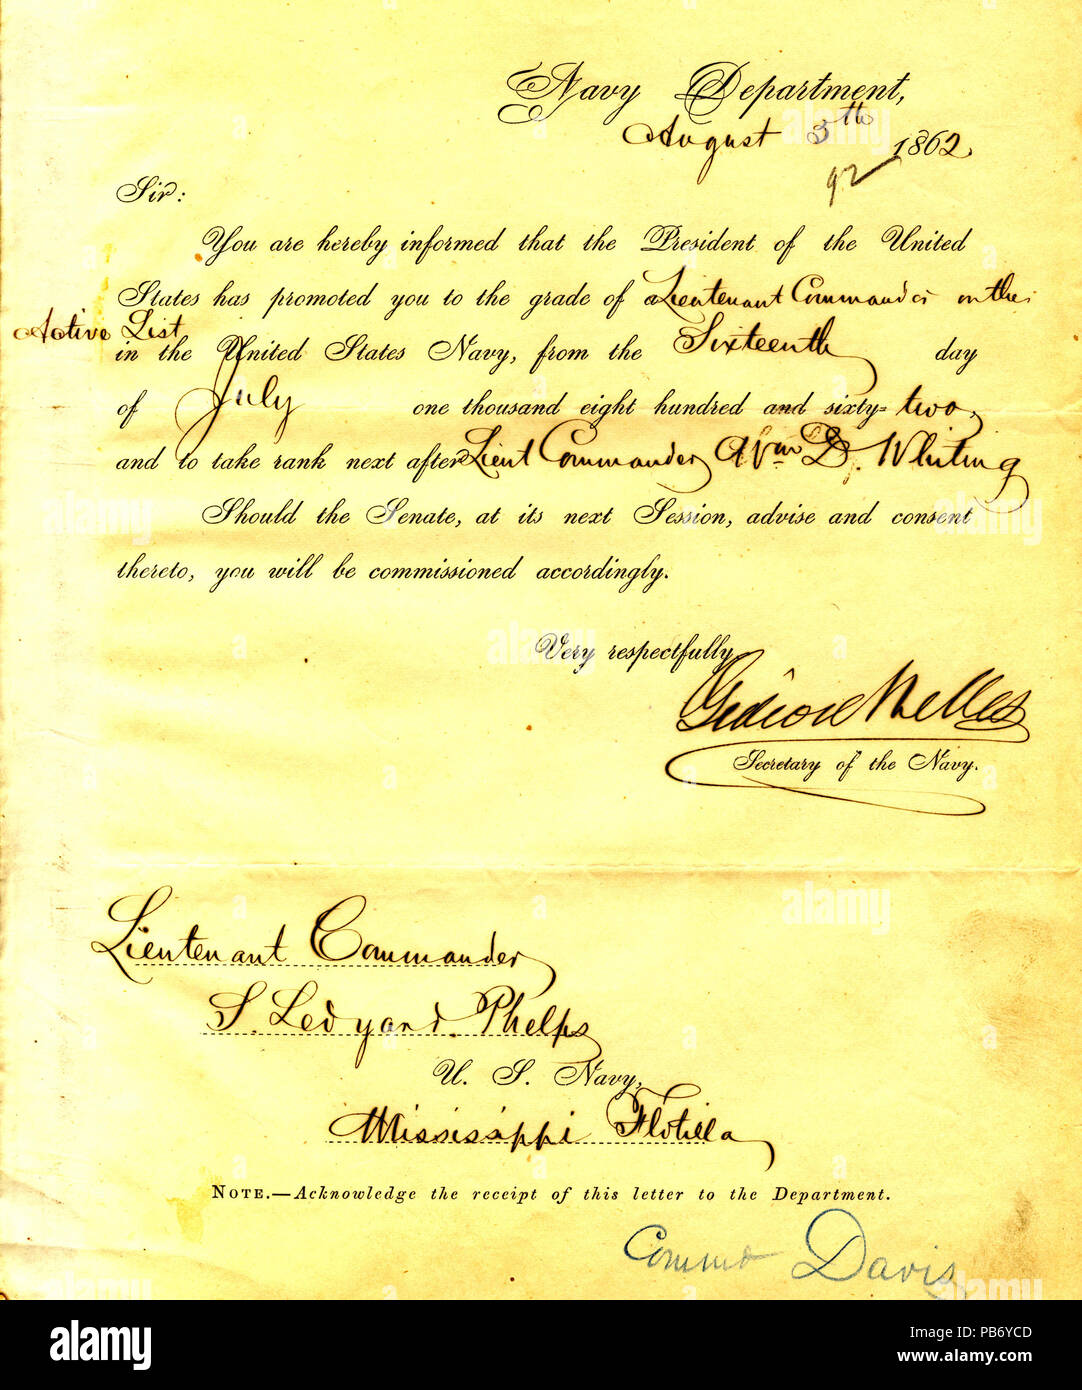 901 Letter from Gideon Welles to Seth Ledyard Phelps, August 5, 1862 - Stock Image